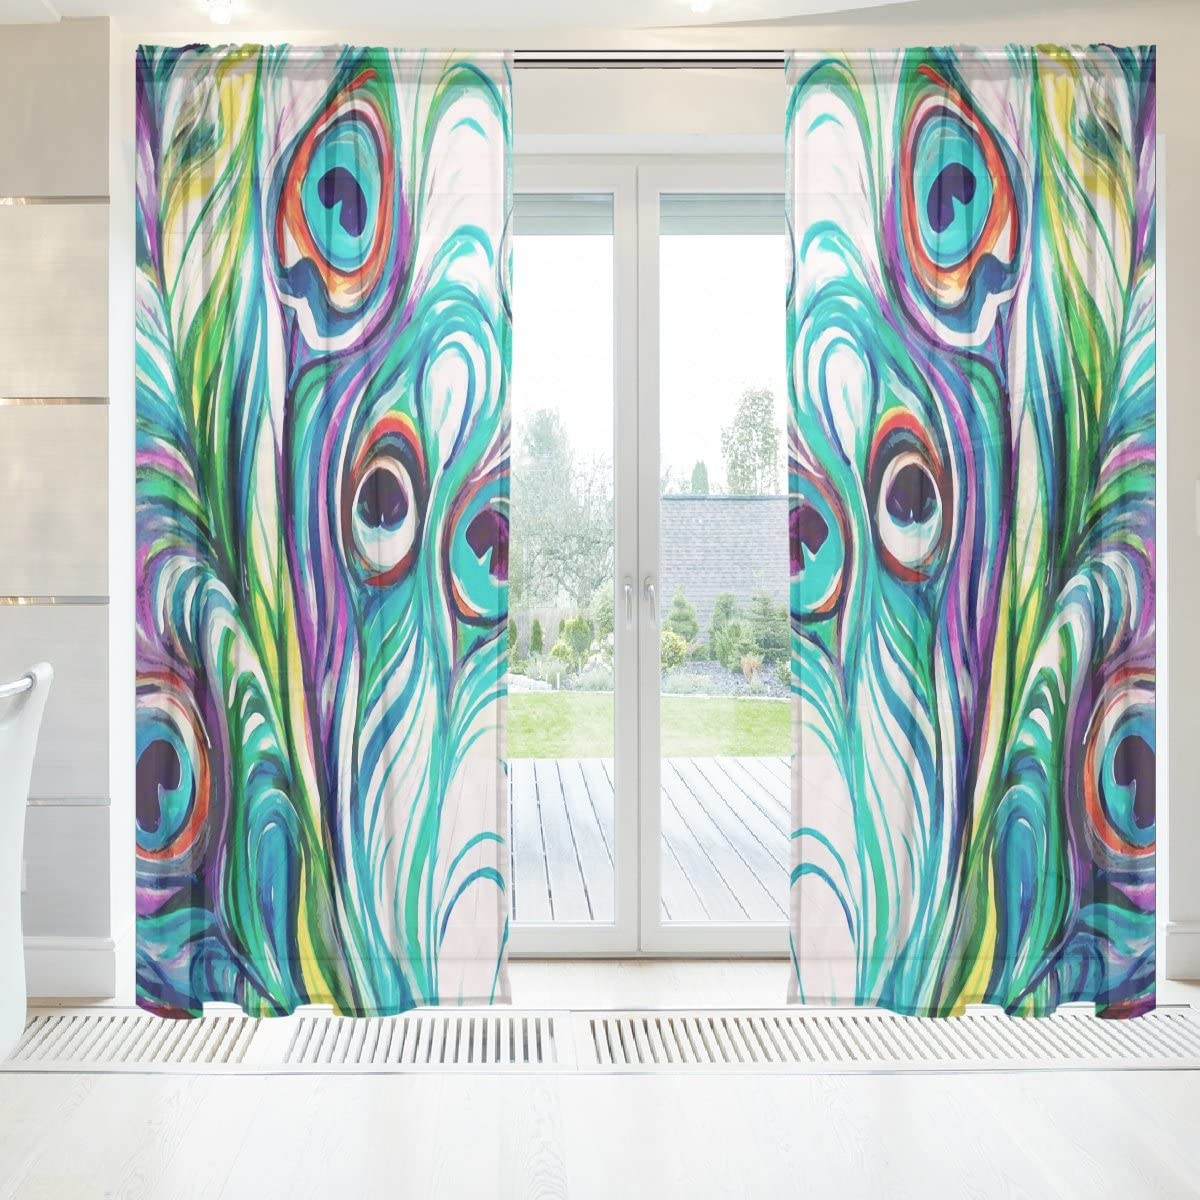 baihuishop Elegant Voile Window Long Sheer Curtain 2 Panels Peacock Feathers Pattern for Door Window Room Decoration 55×84 Inch Blue Turquoise Purple Green Teal